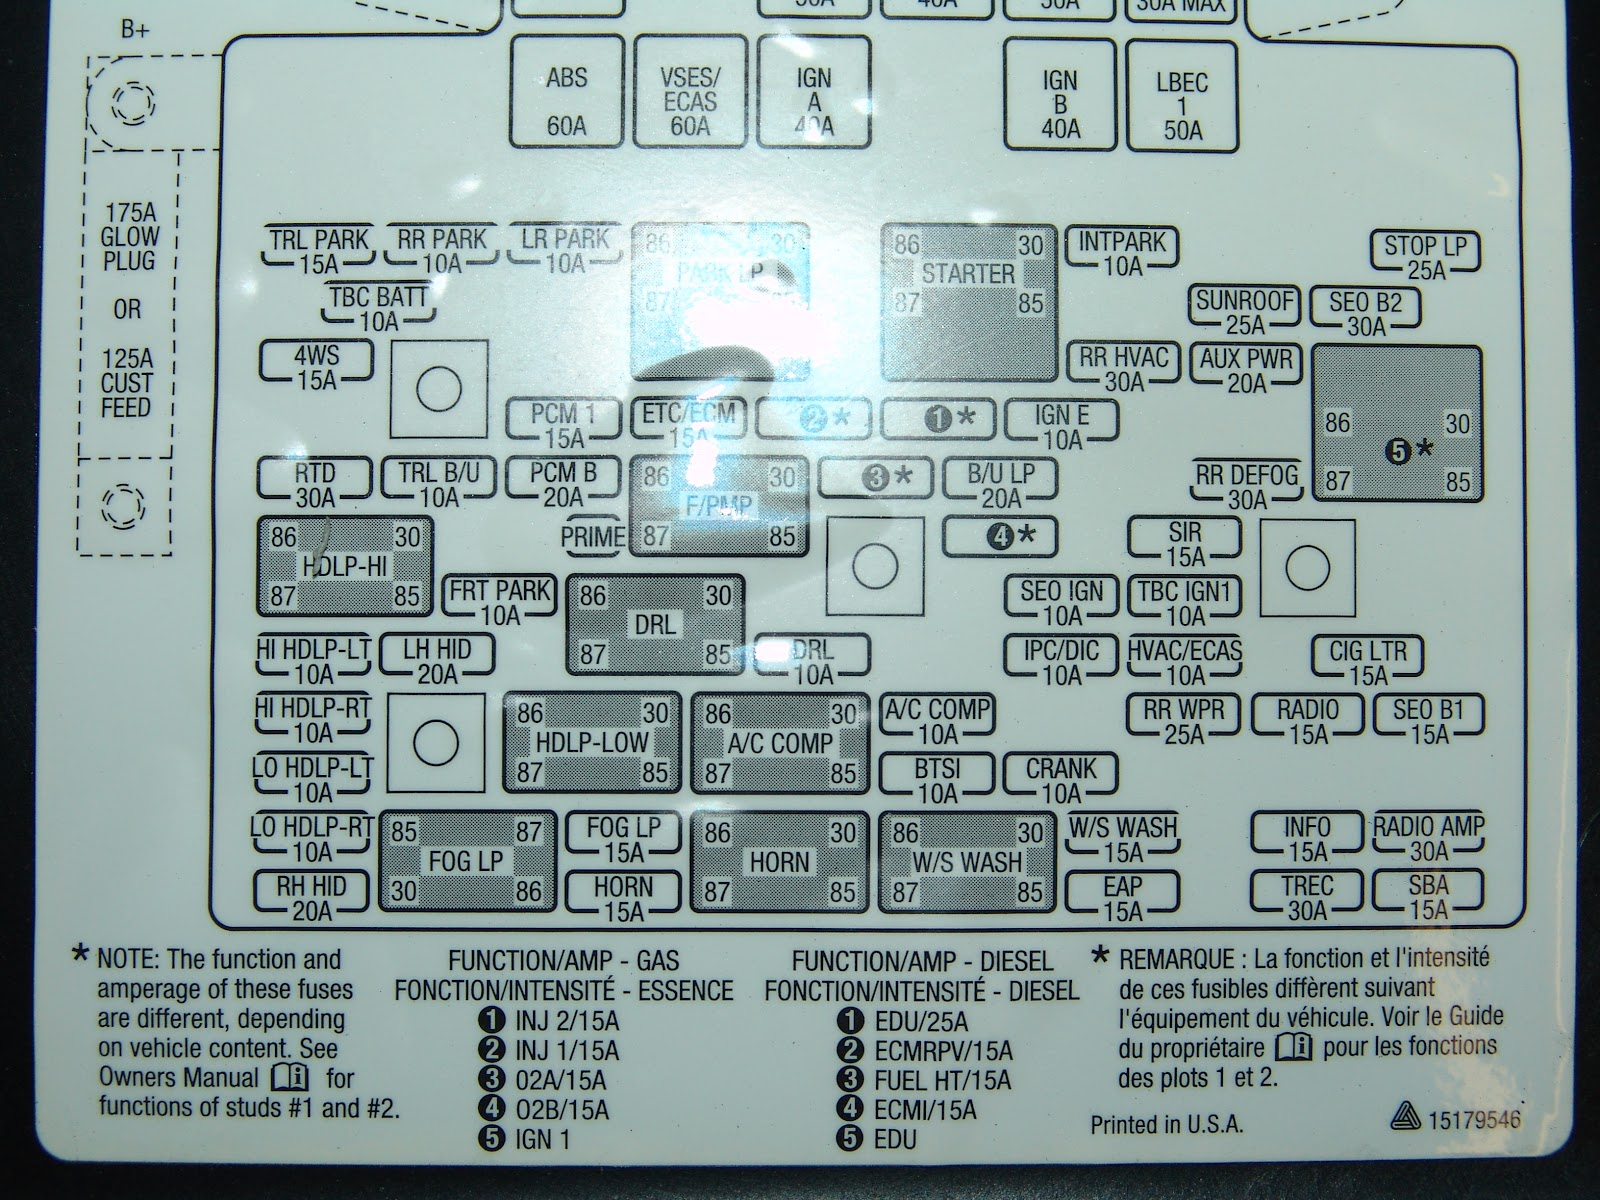 2000 freightliner fuse box wiring diagram new [ 1600 x 1200 Pixel ]